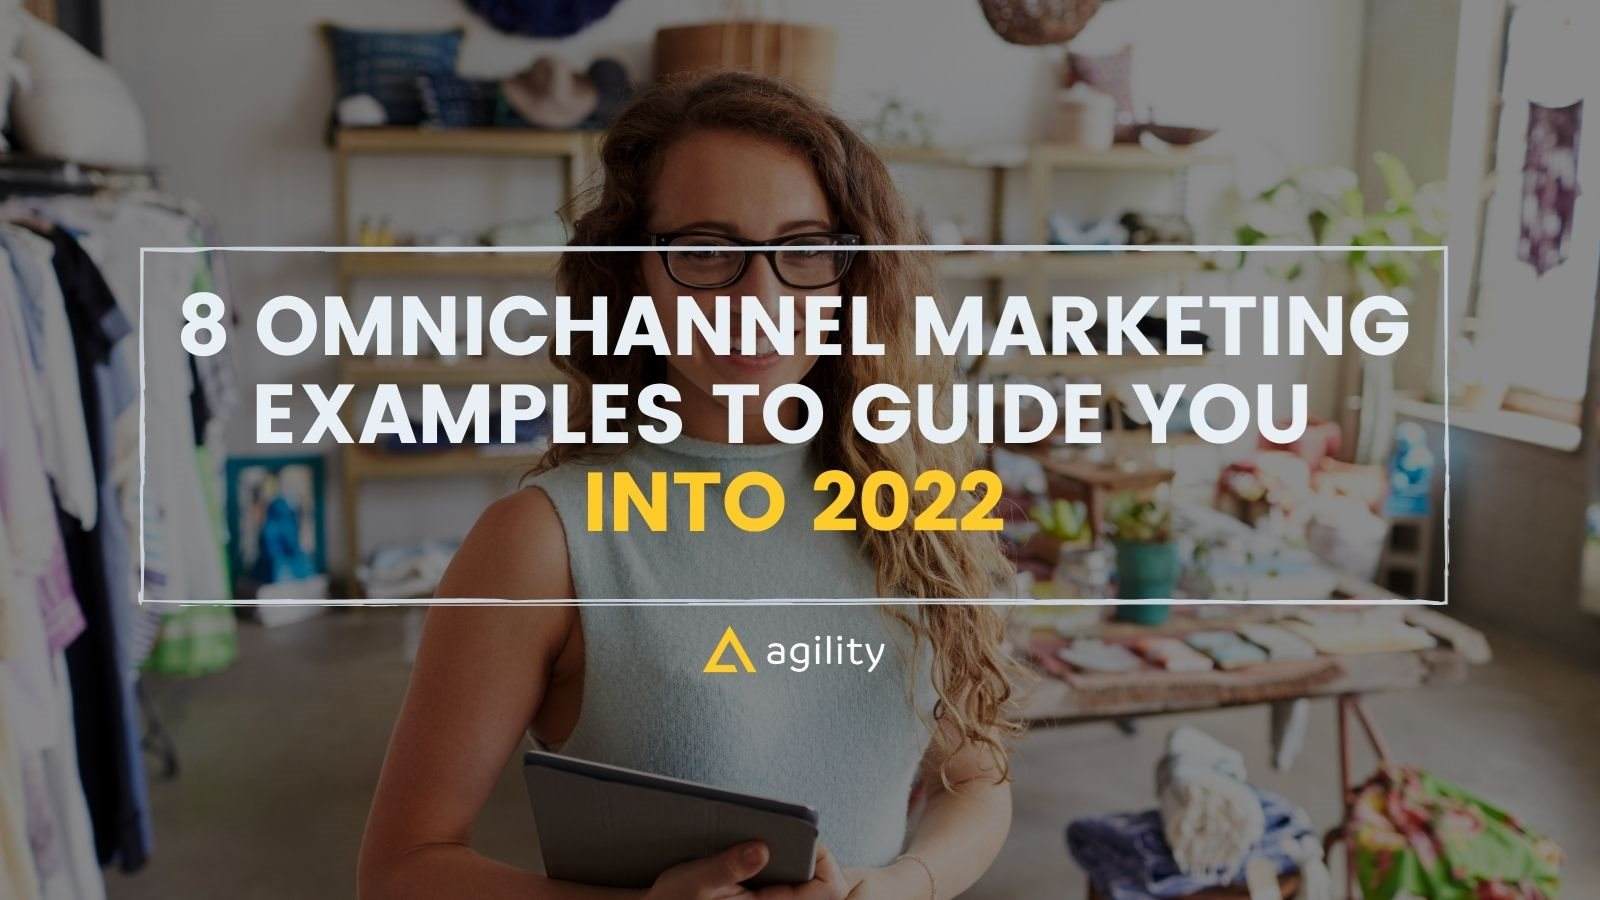 8 Omnichannel Marketing Examples To Guide You Into 2022